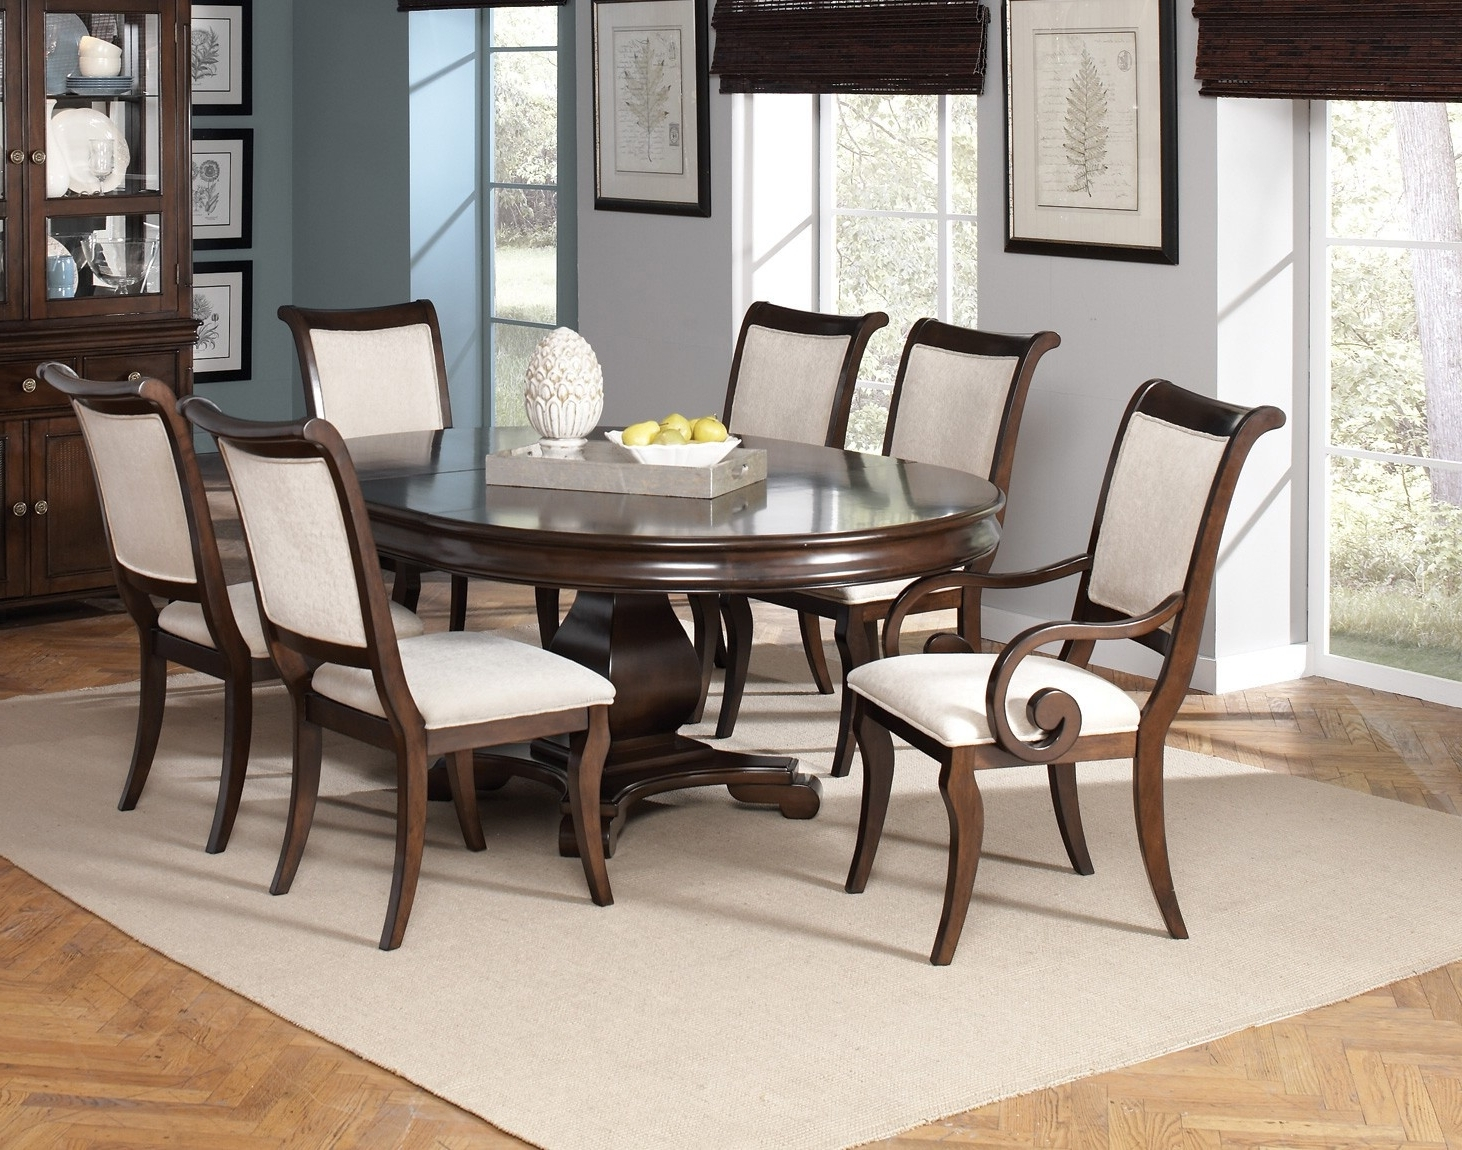 Favorite Dining Table And Chair Set Plastic Roma 8 Seater Sets With Photos For Roma Dining Tables And Chairs Sets (View 5 of 25)